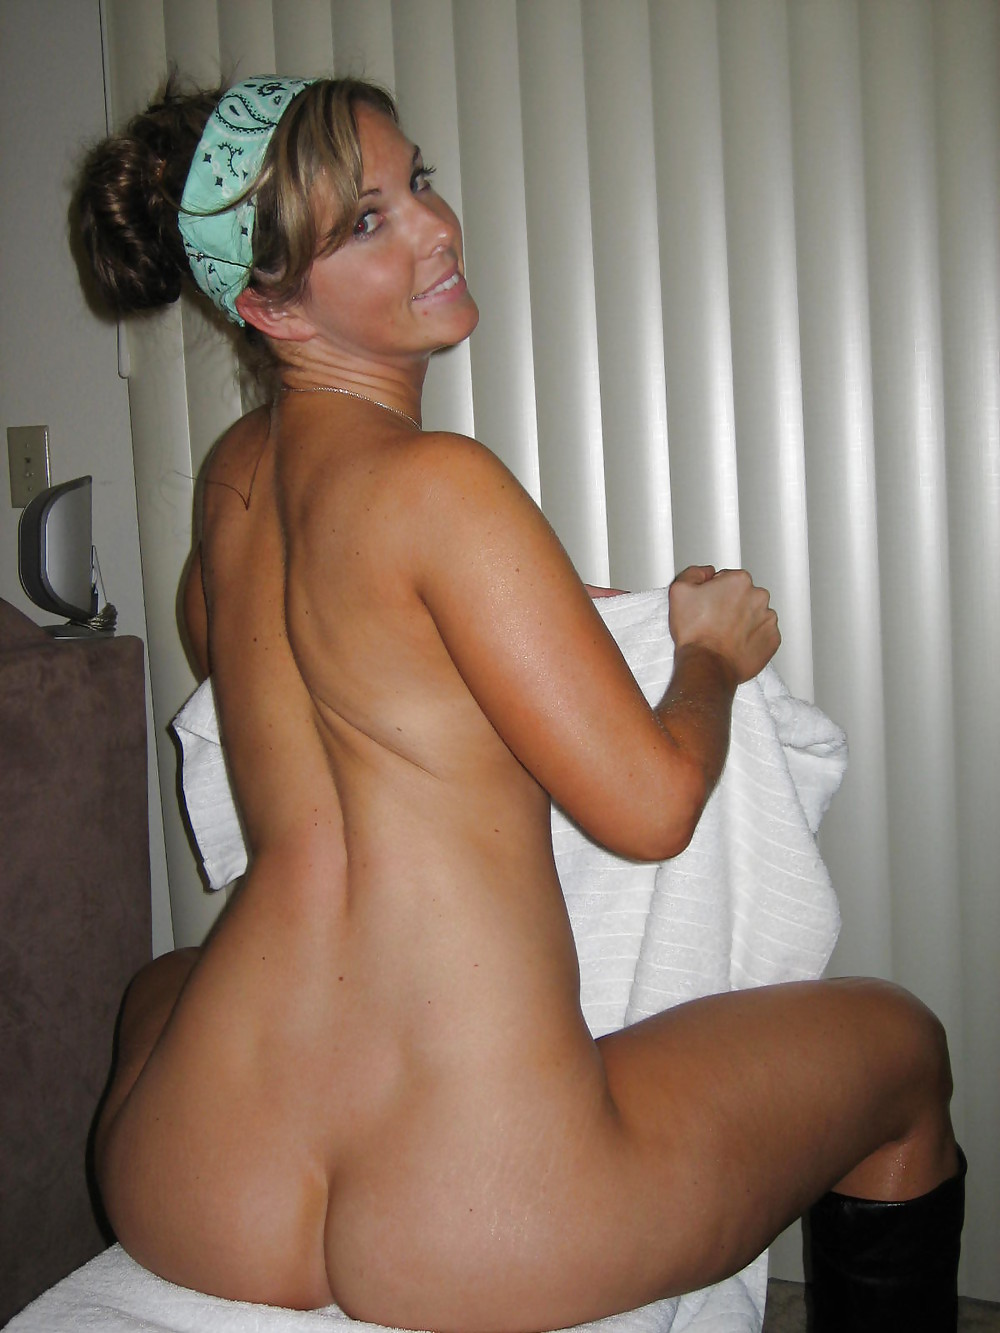 Fucking horny milf pic gallery